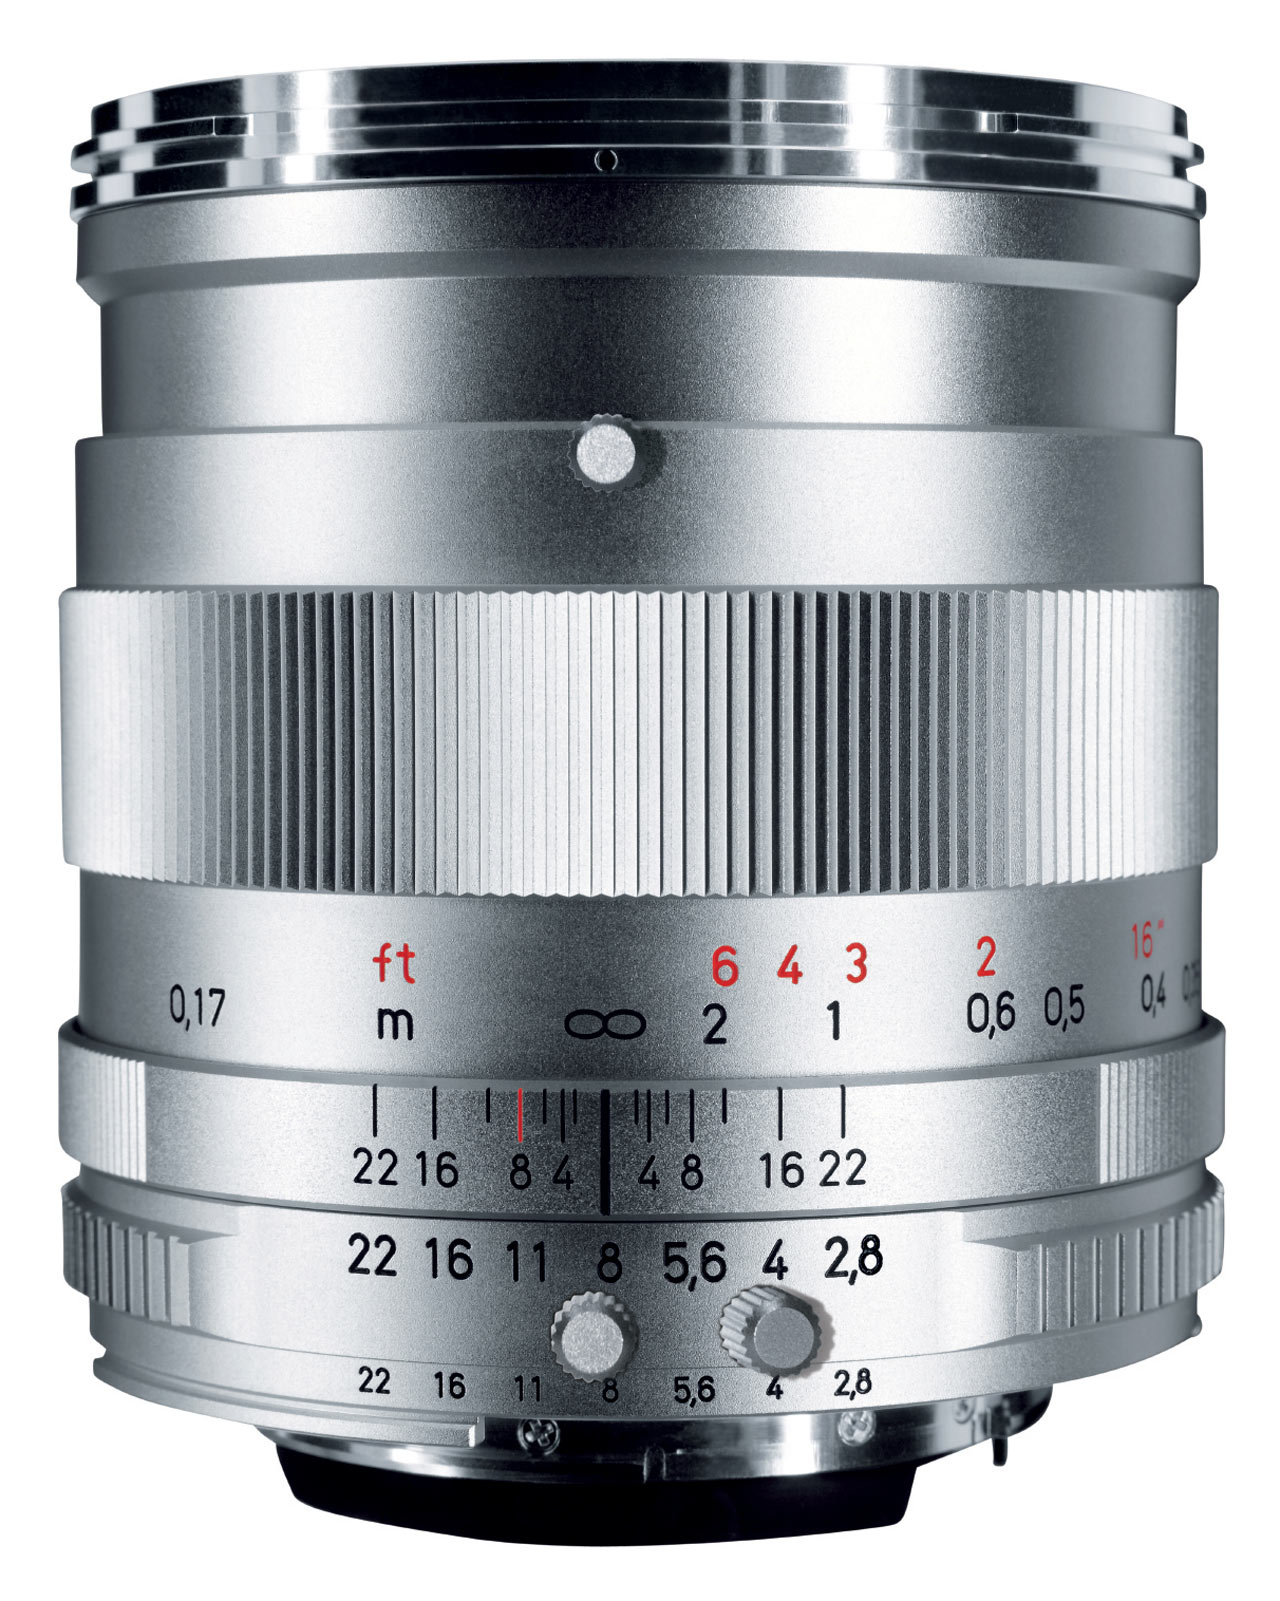 Zeiss introduces ZF-I industrial lens range for Nikon F-Mount